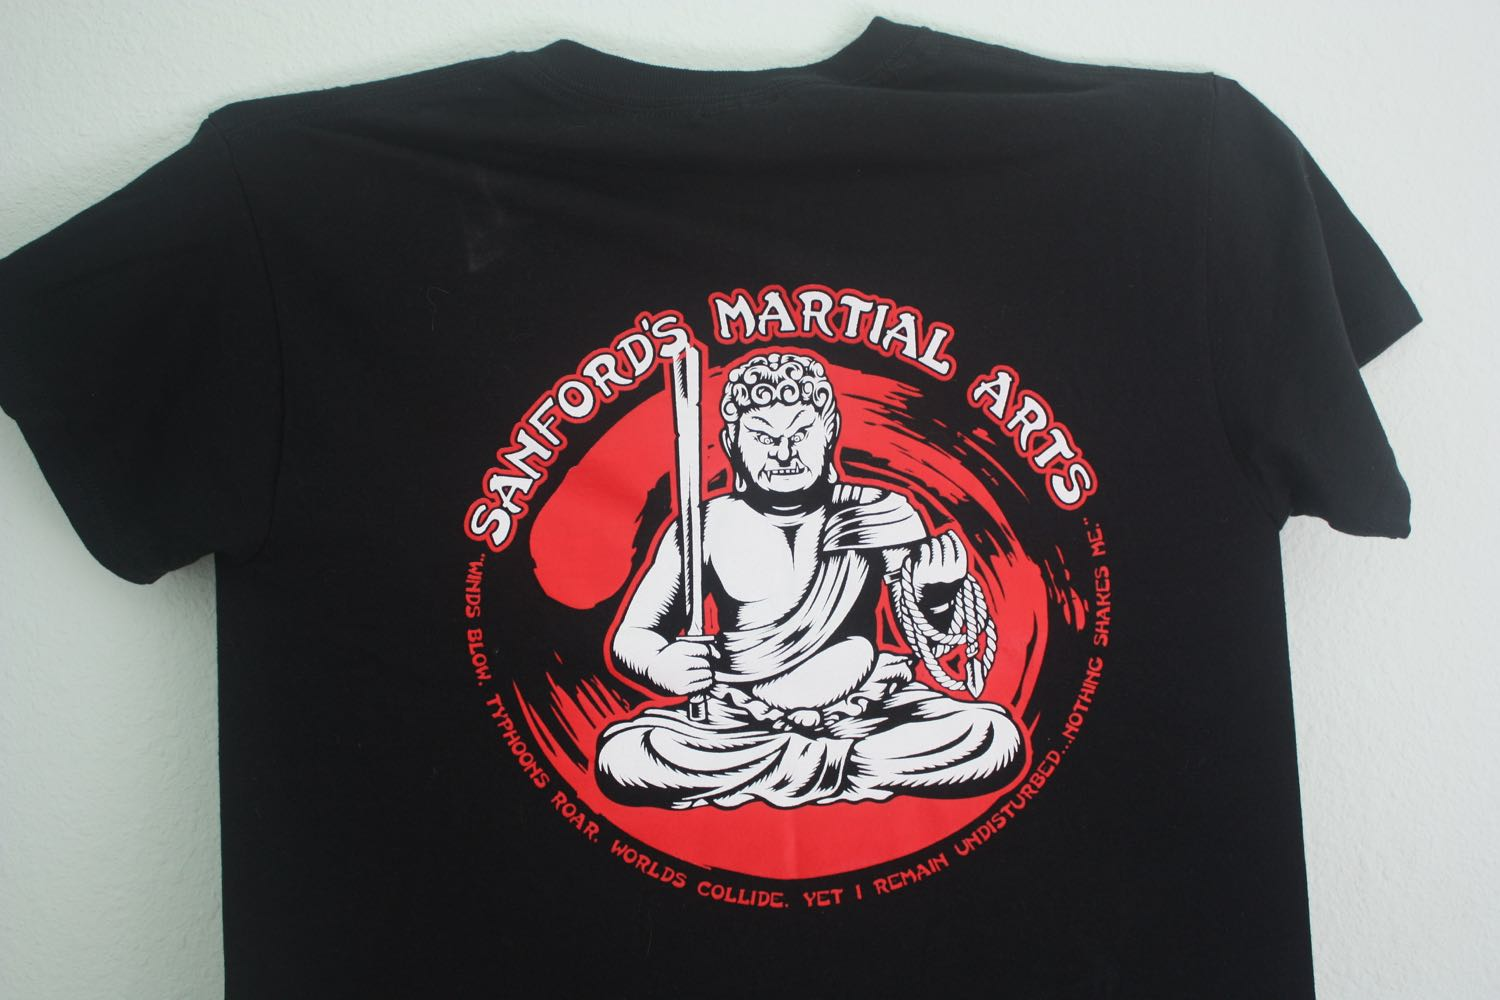 Sanford Marial Arts Savage Buddha